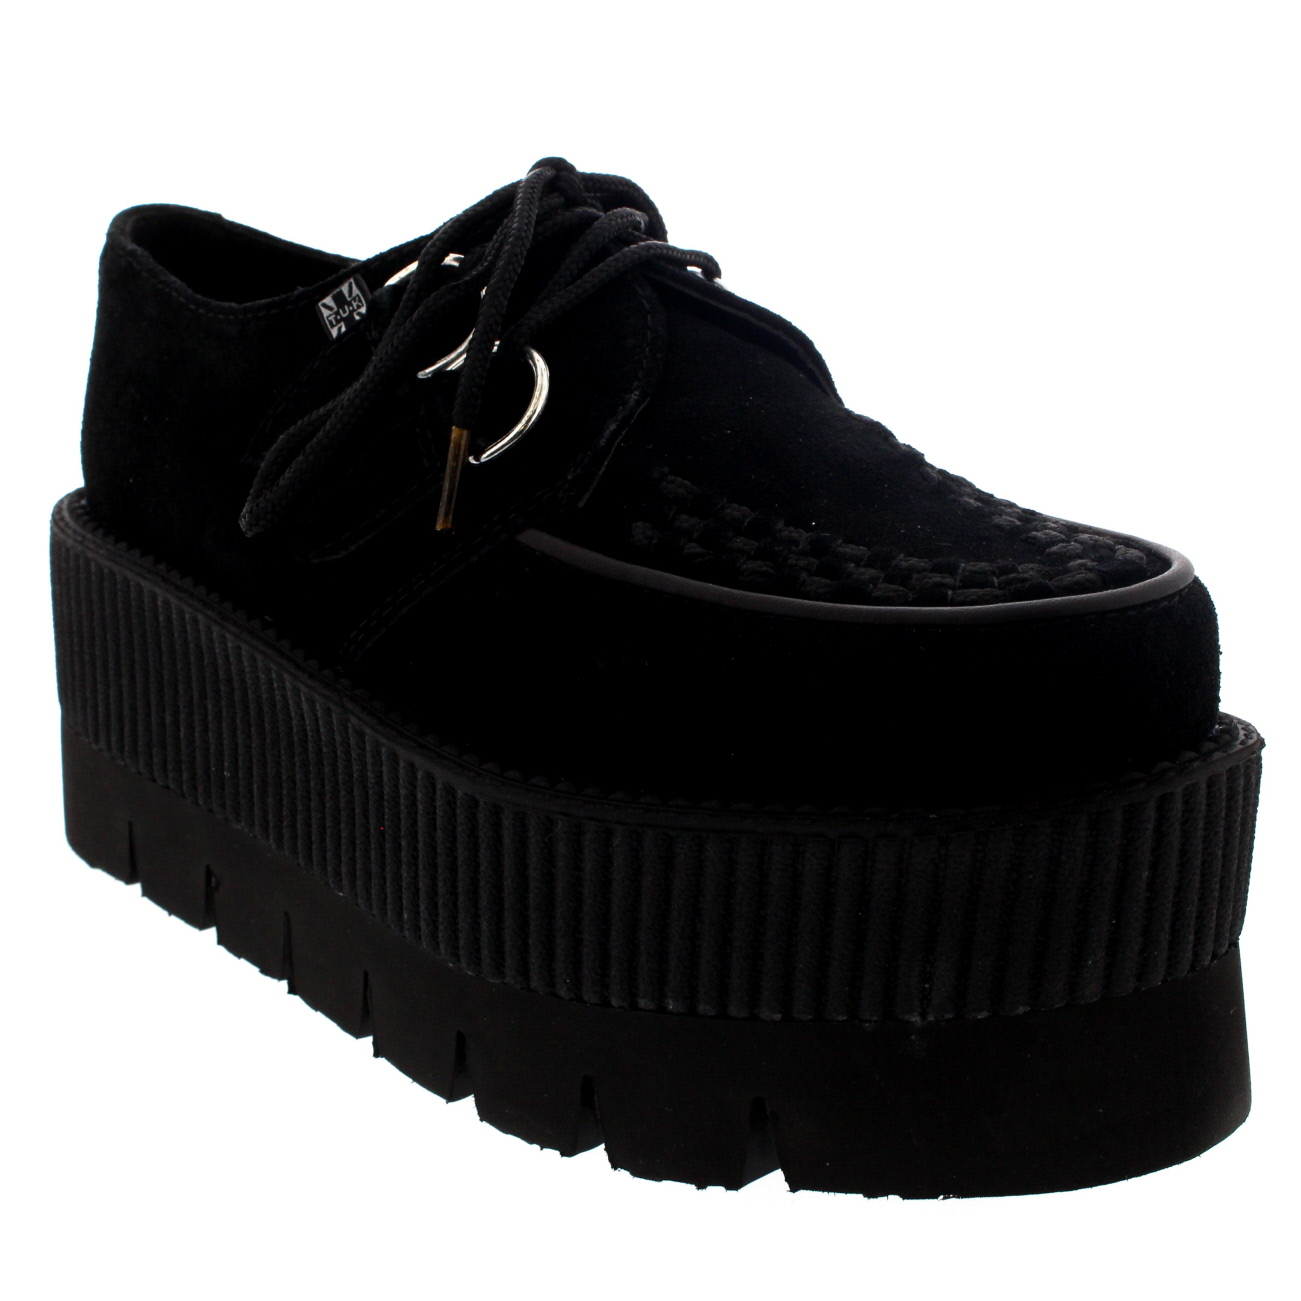 T.U.K Monster Lug Viva Mondo Creeper